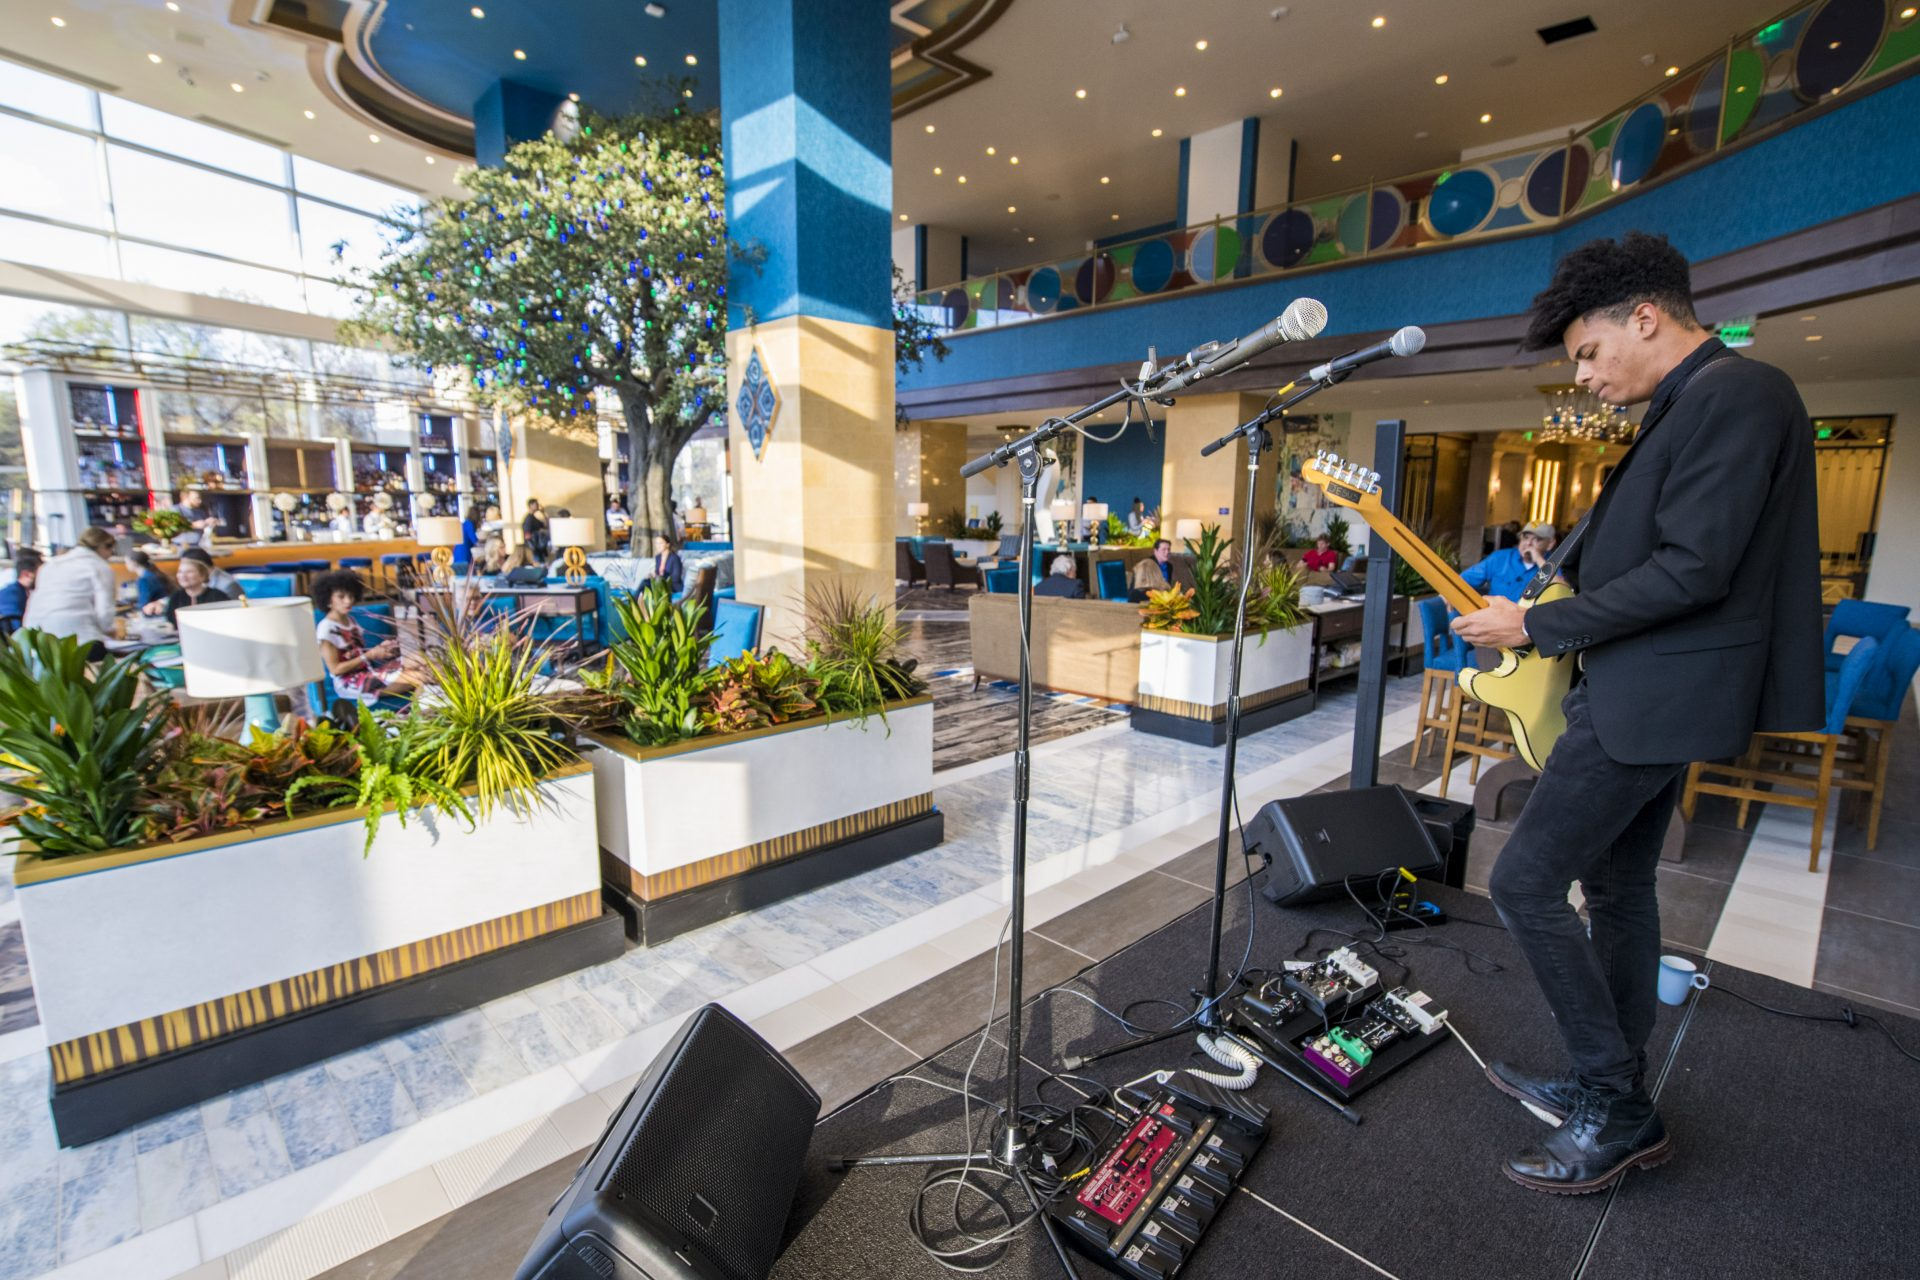 View from stage of musician playing electric guitar looking out to large open Fulton restaurant seating area and balcony